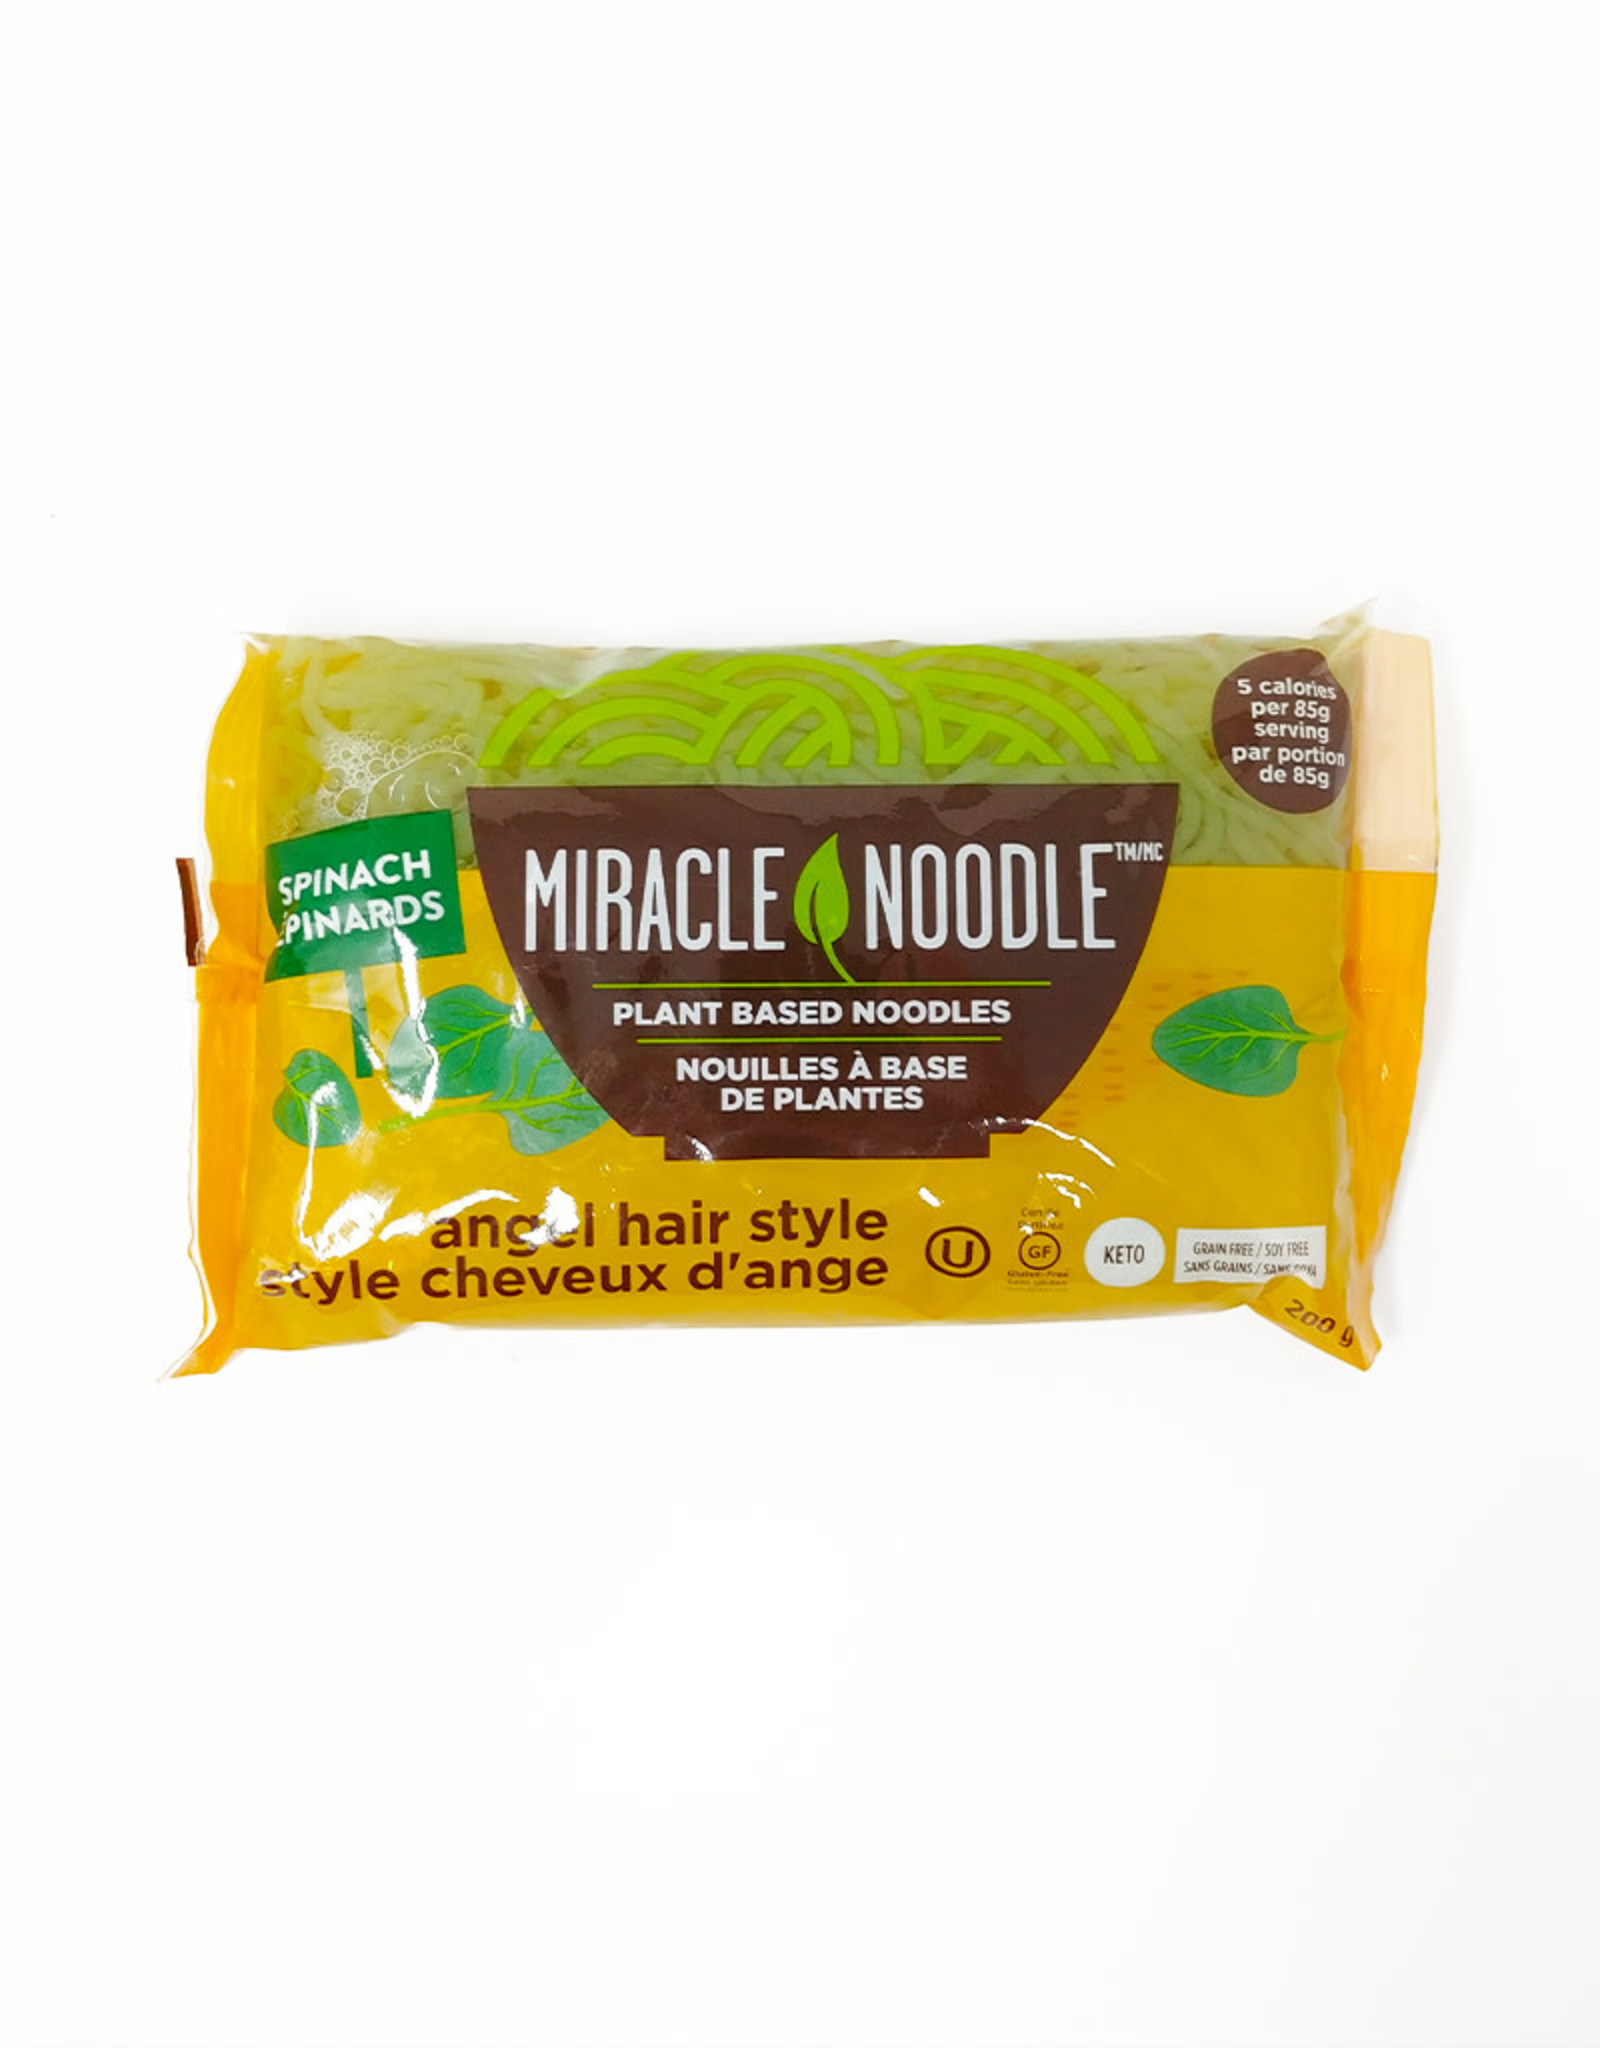 Miracle Noodle Miracle Noodle - Plant Noodles, Angel Hair Spinach (200g)